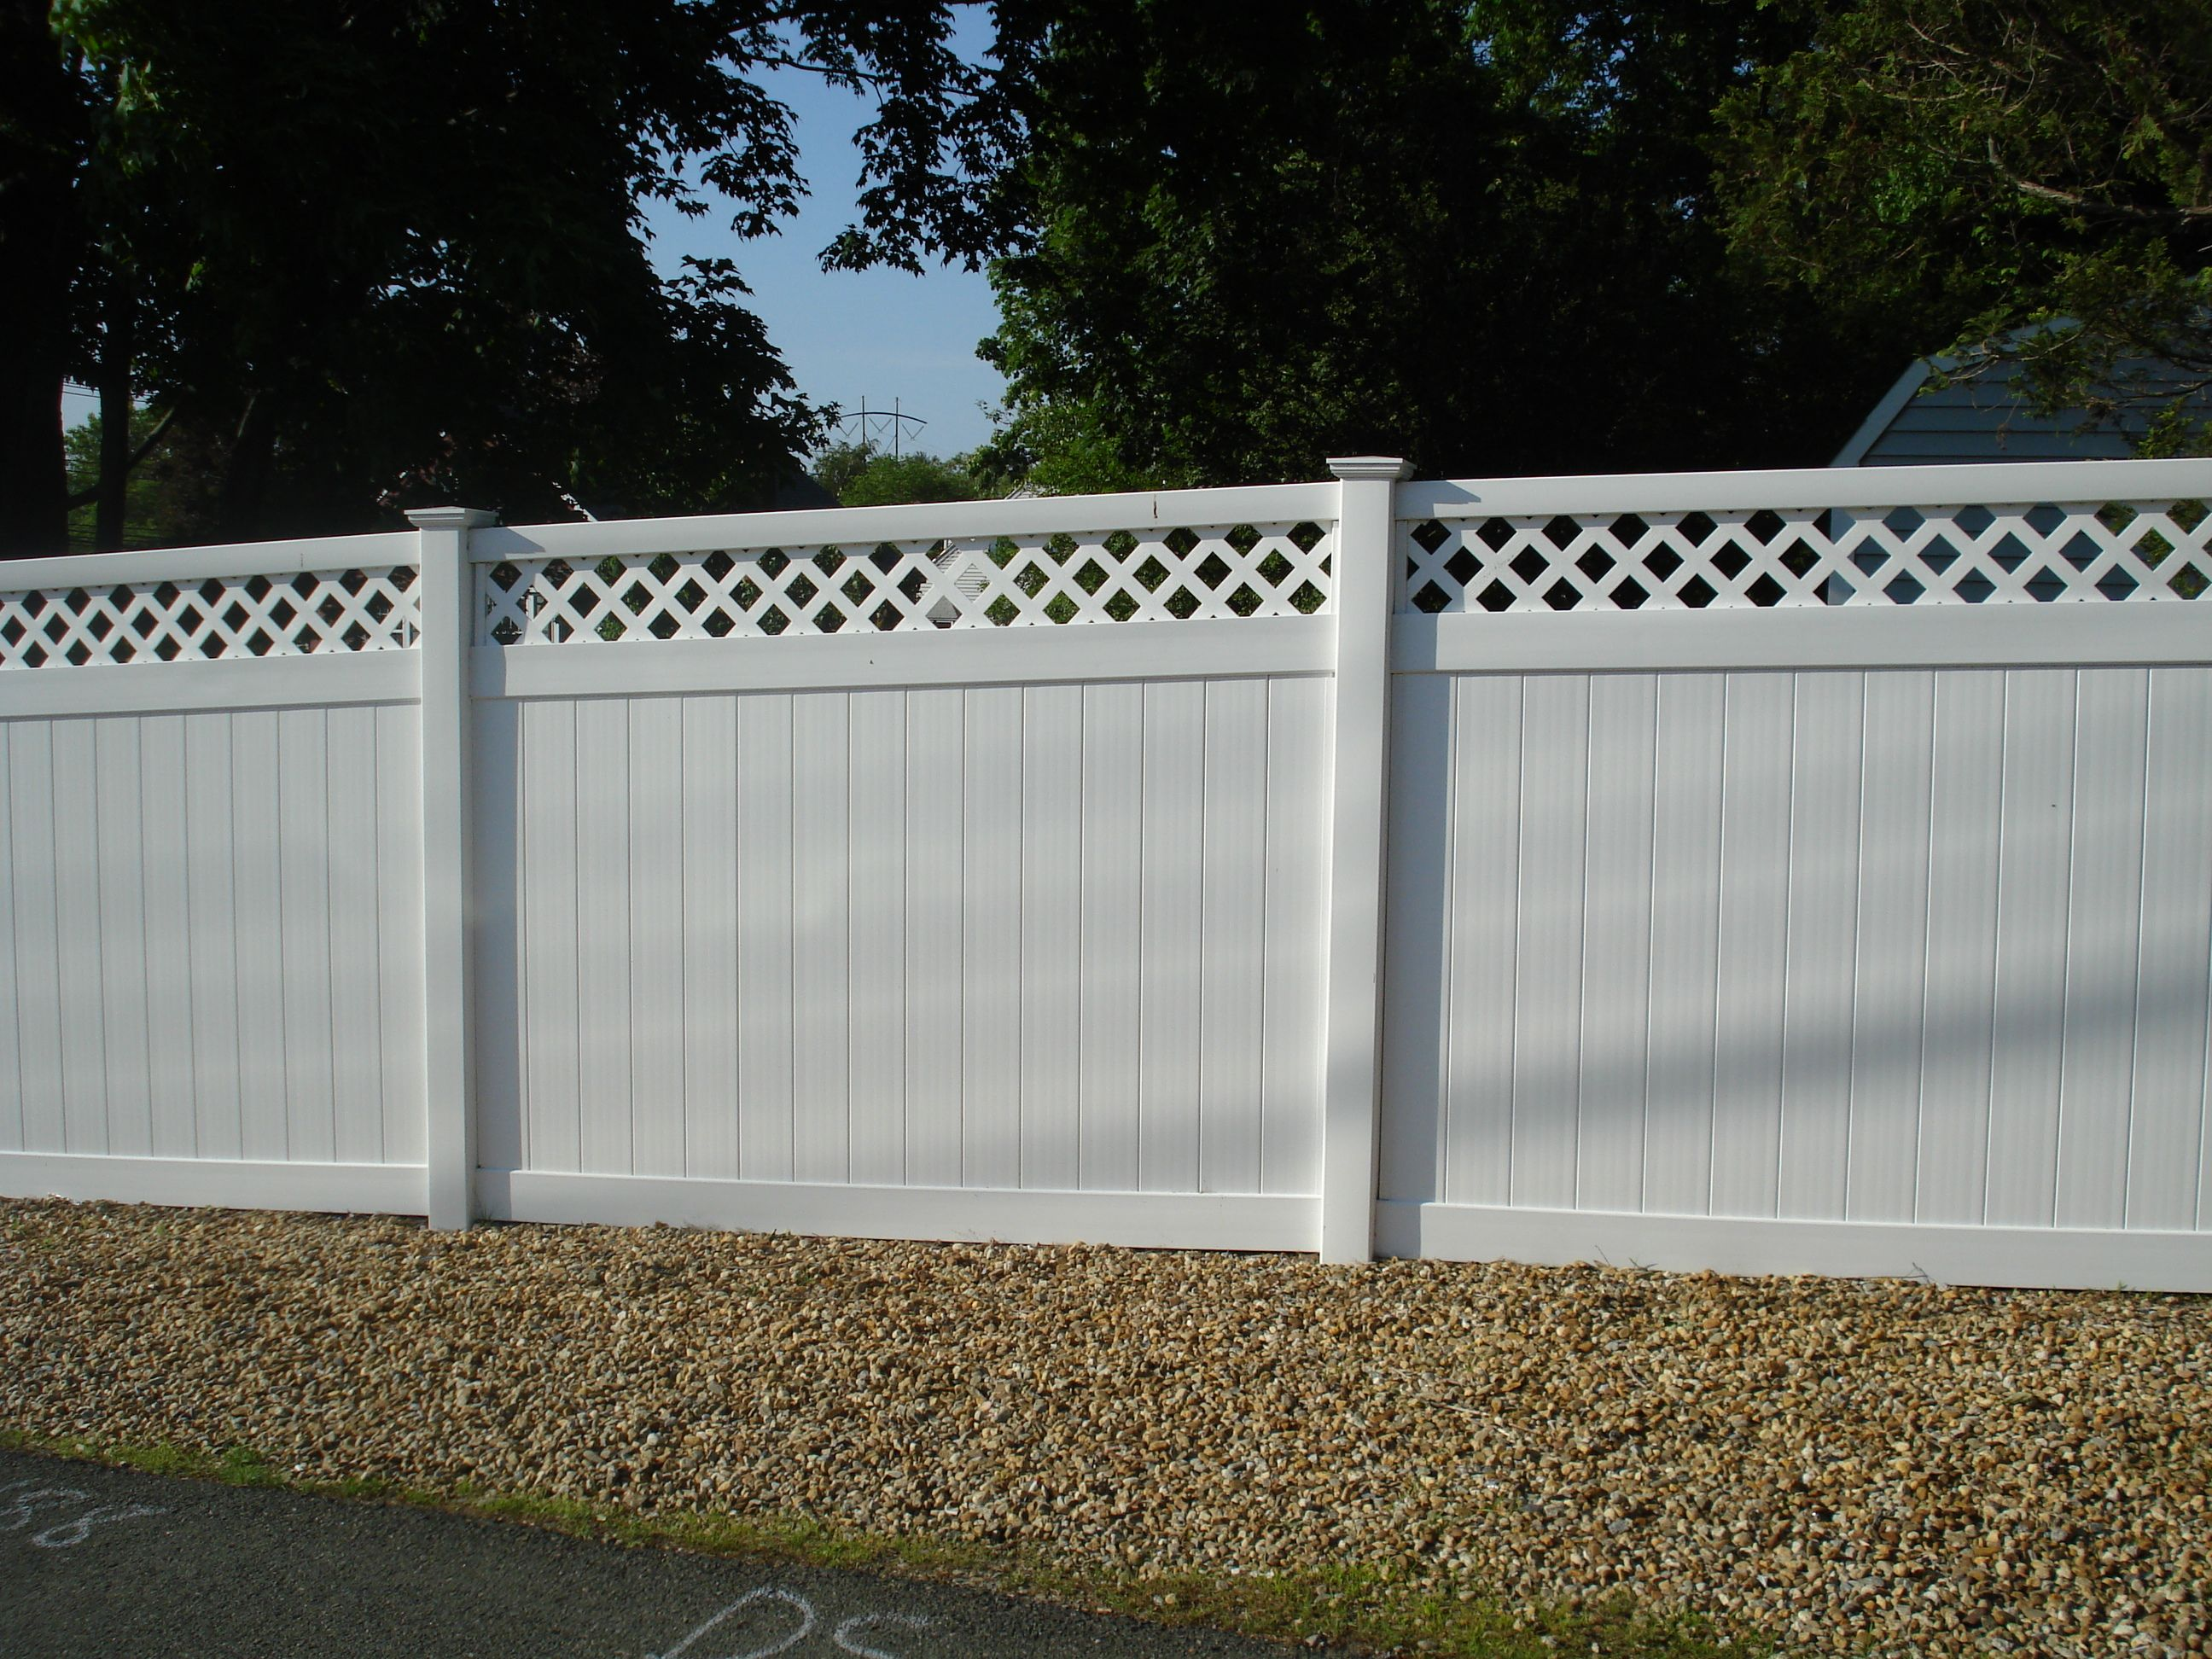 Garden Vinyl Fence Ideas Home Interior Design Simple Fantastical .